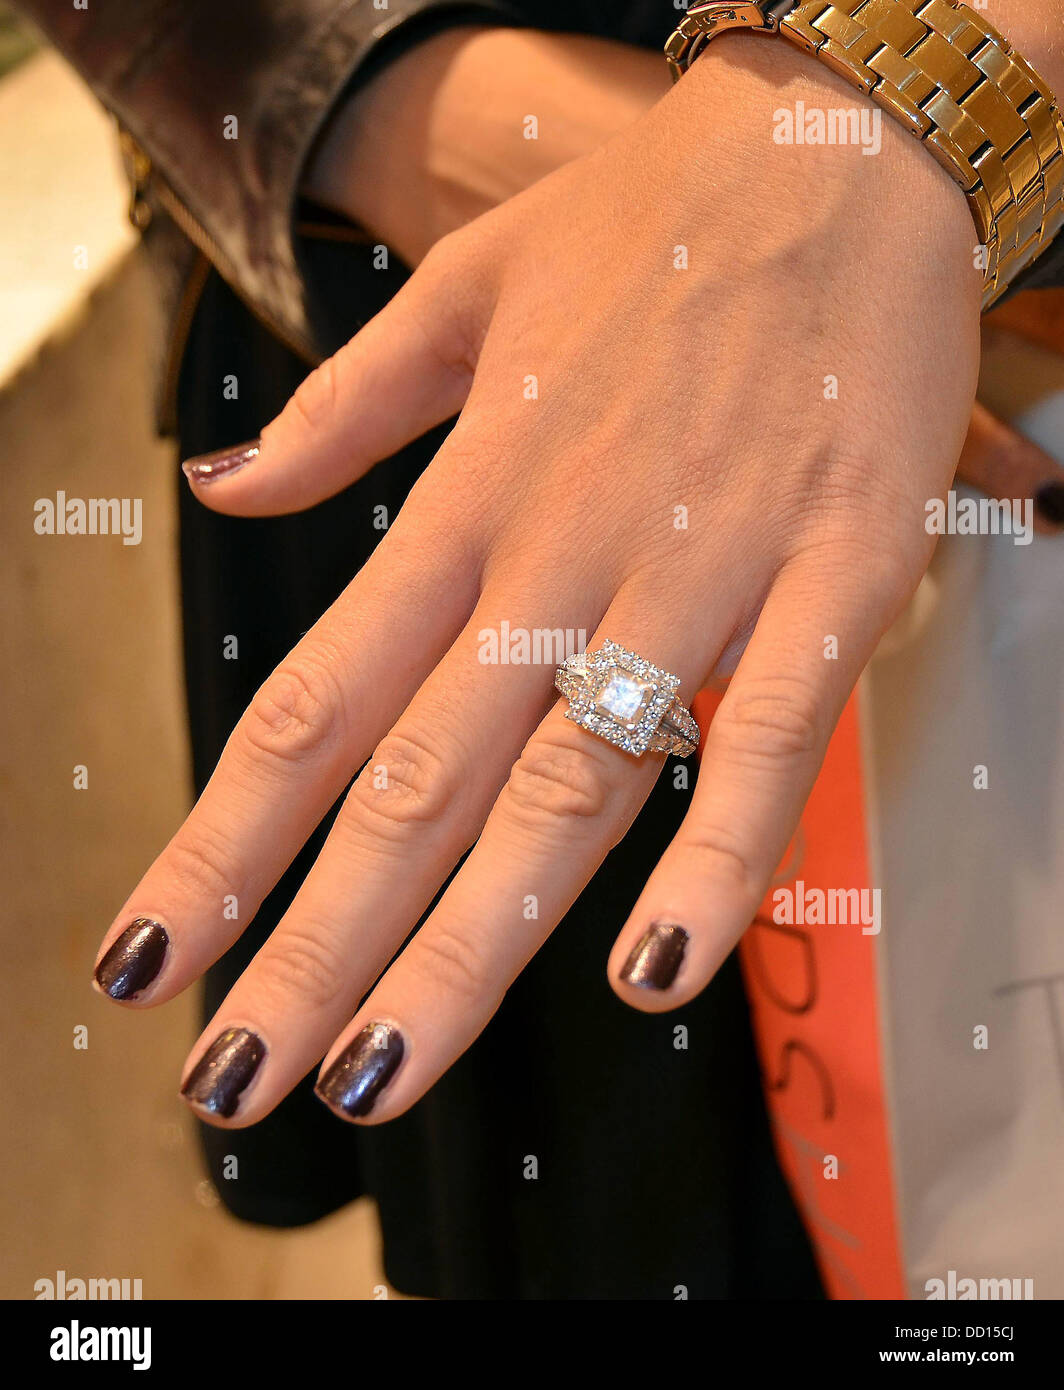 Vogue Williams Shows Off Her Engagement Ring While Shopping On Stock